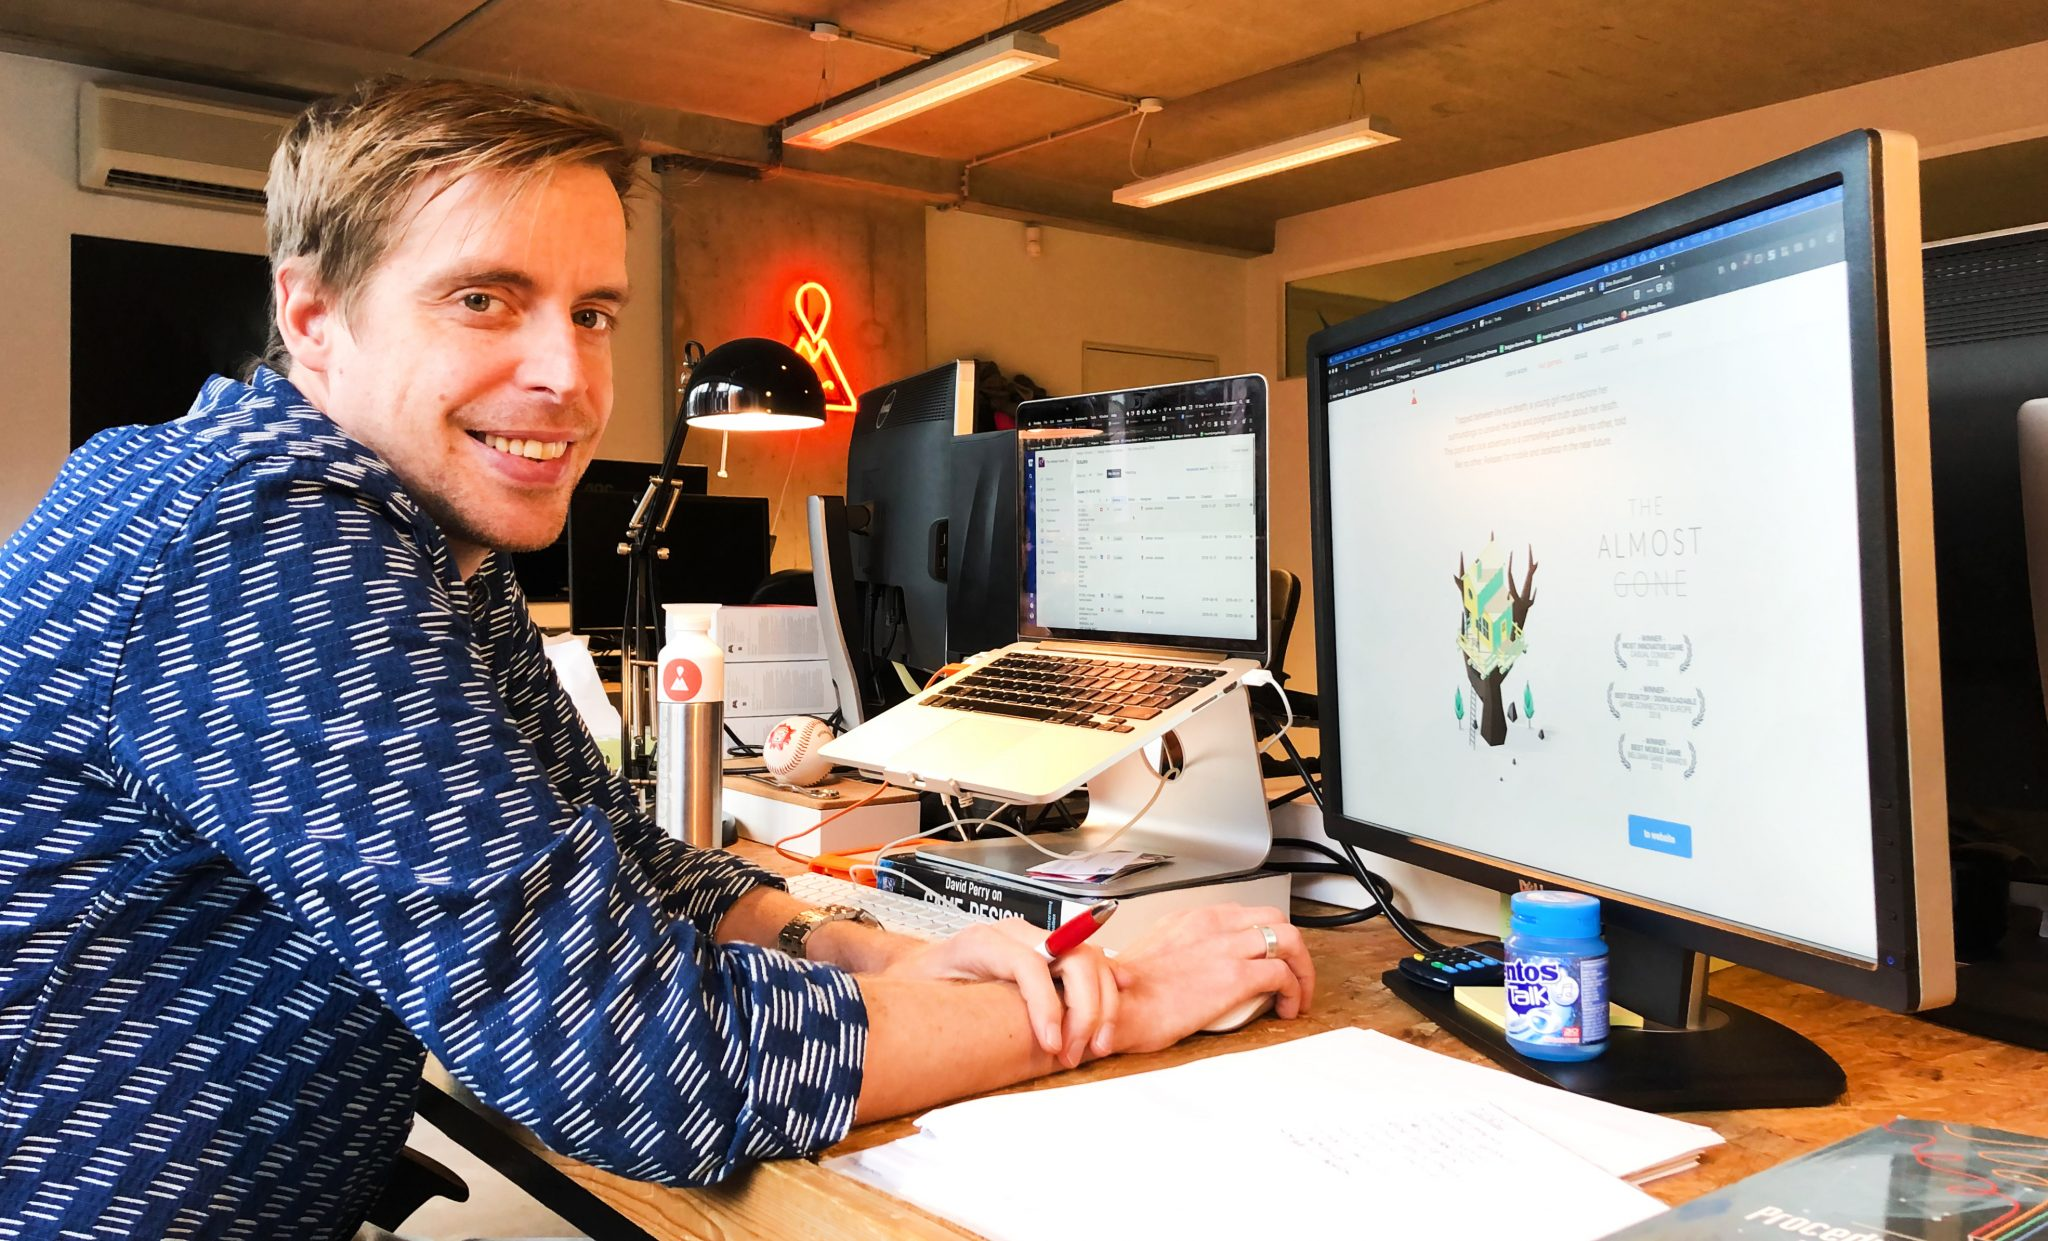 Jeroen is managing director van een game studio